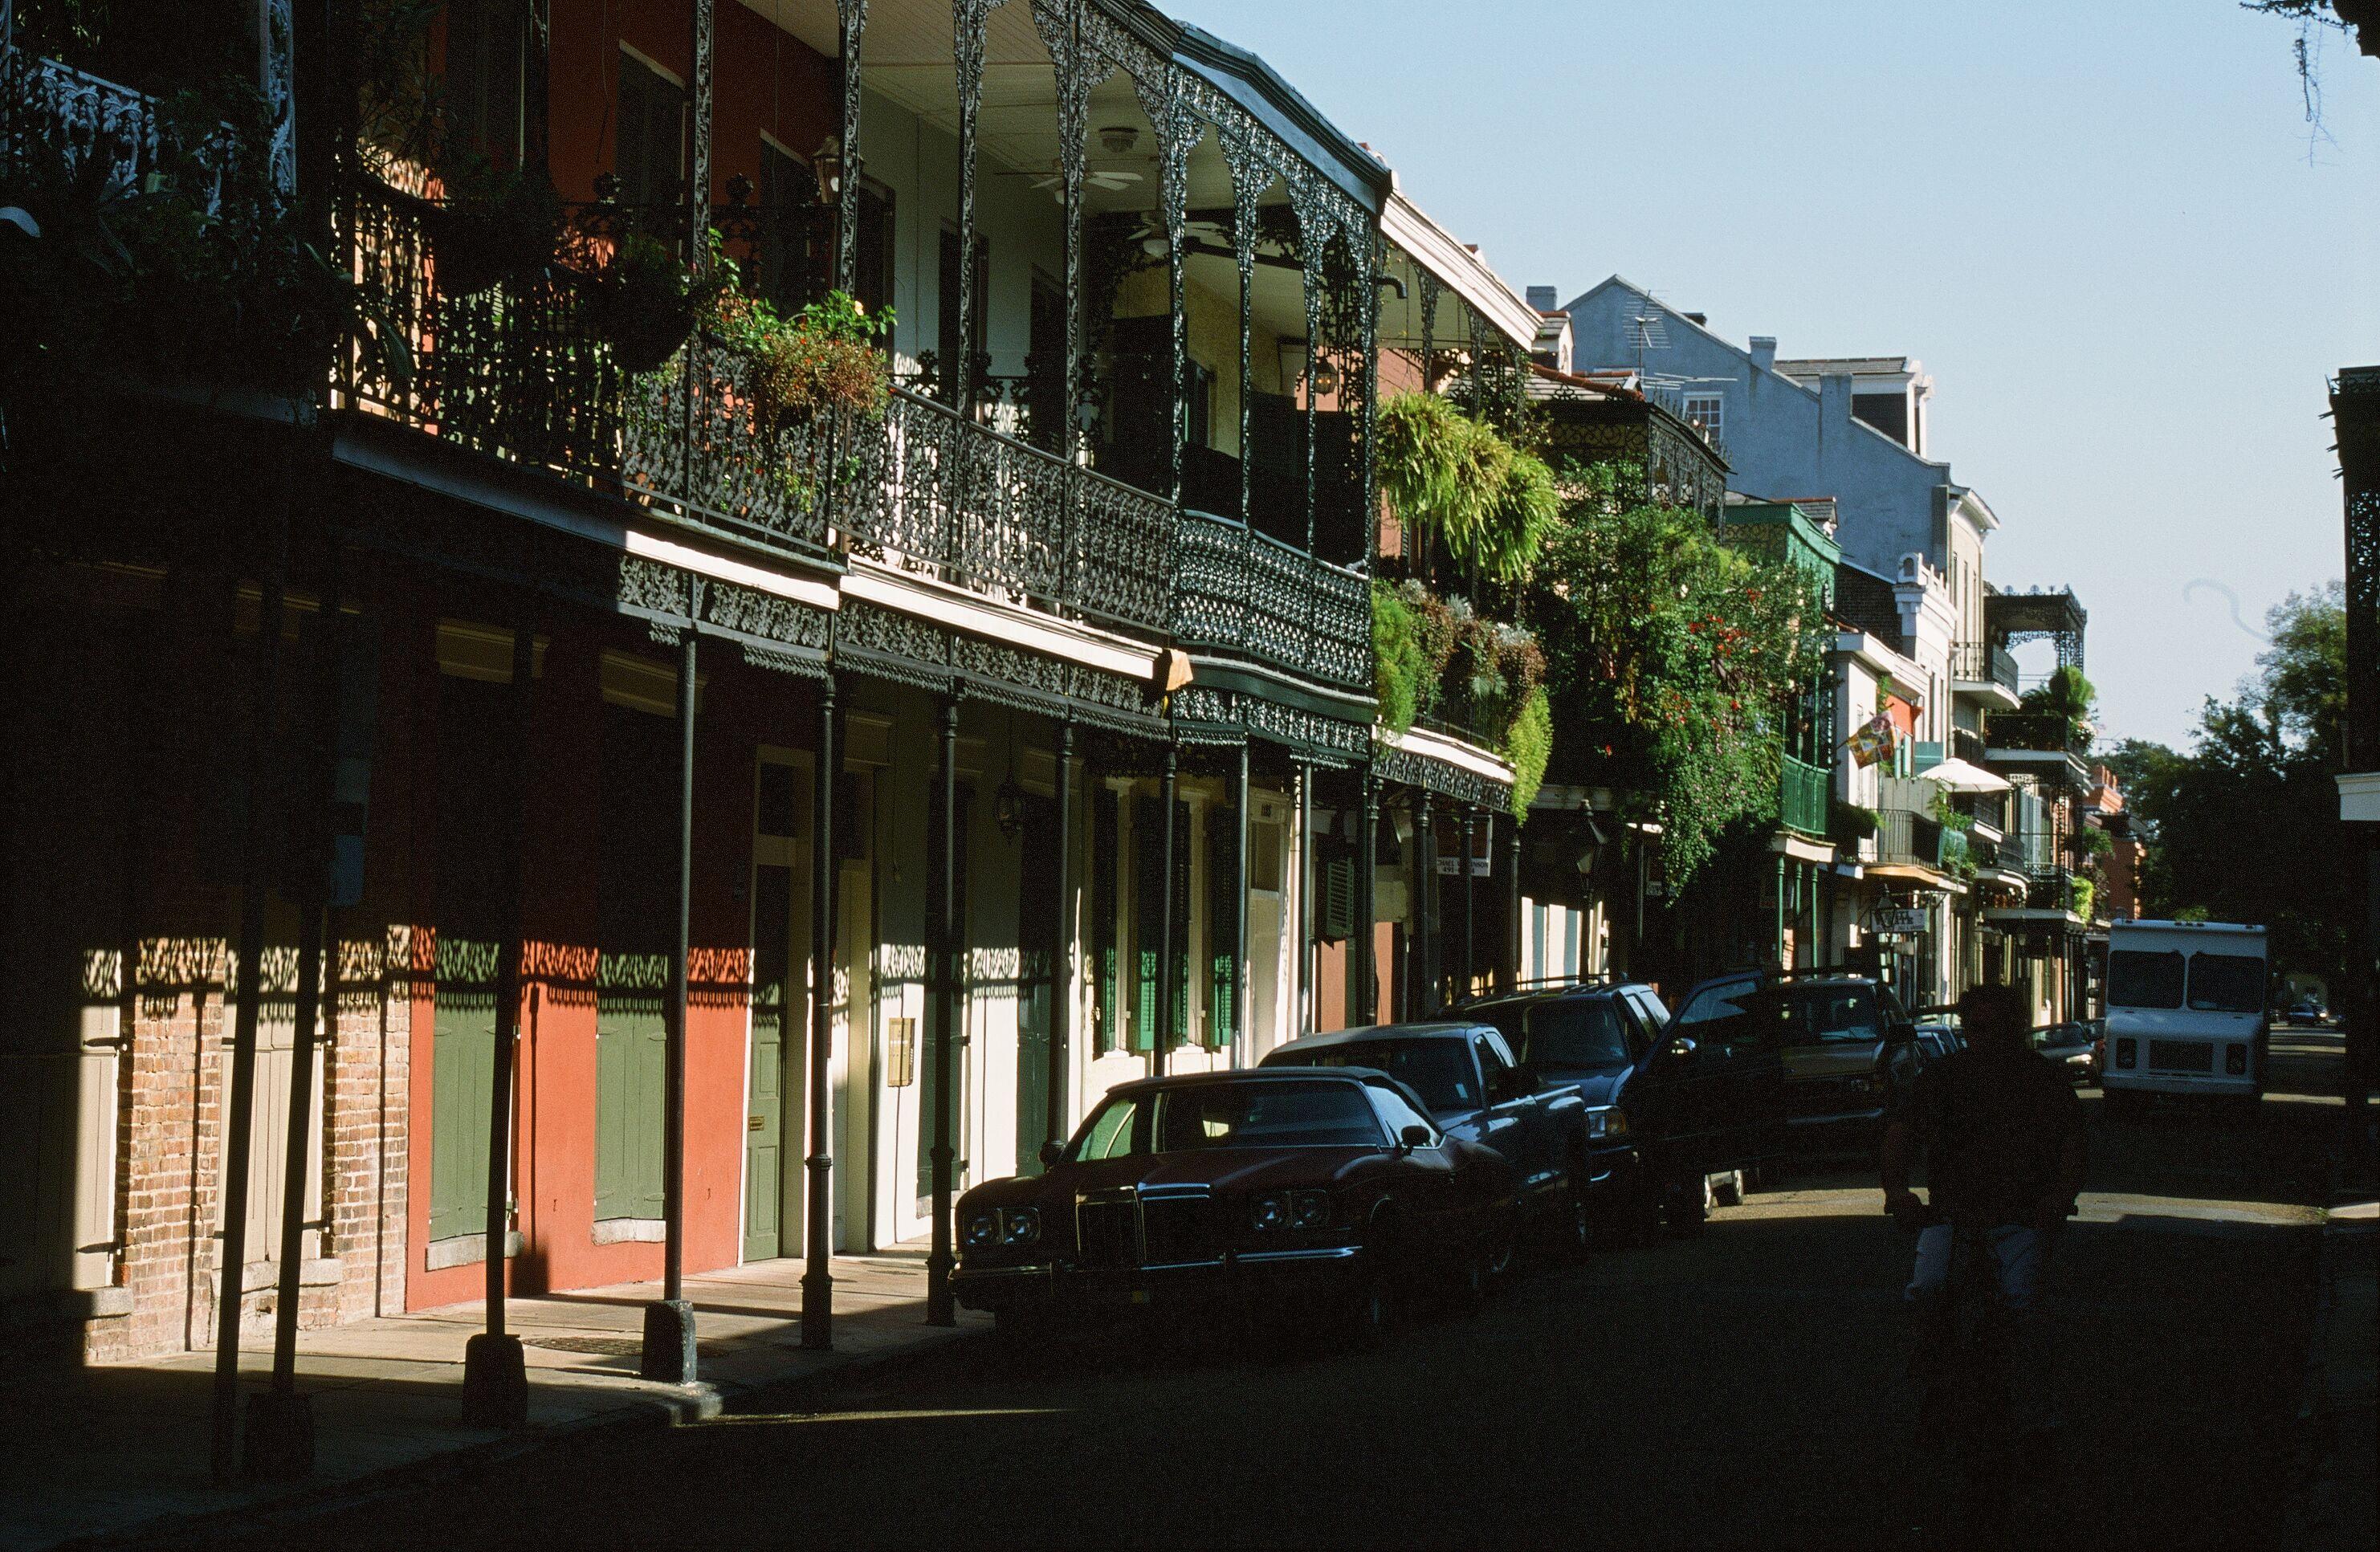 descriptive essay new orleans Descriptive essay about new orleans even before hurricane katrina new orleans schools suffered from a lack of teachers, run down facilities and failure to meet state and national guidelines.